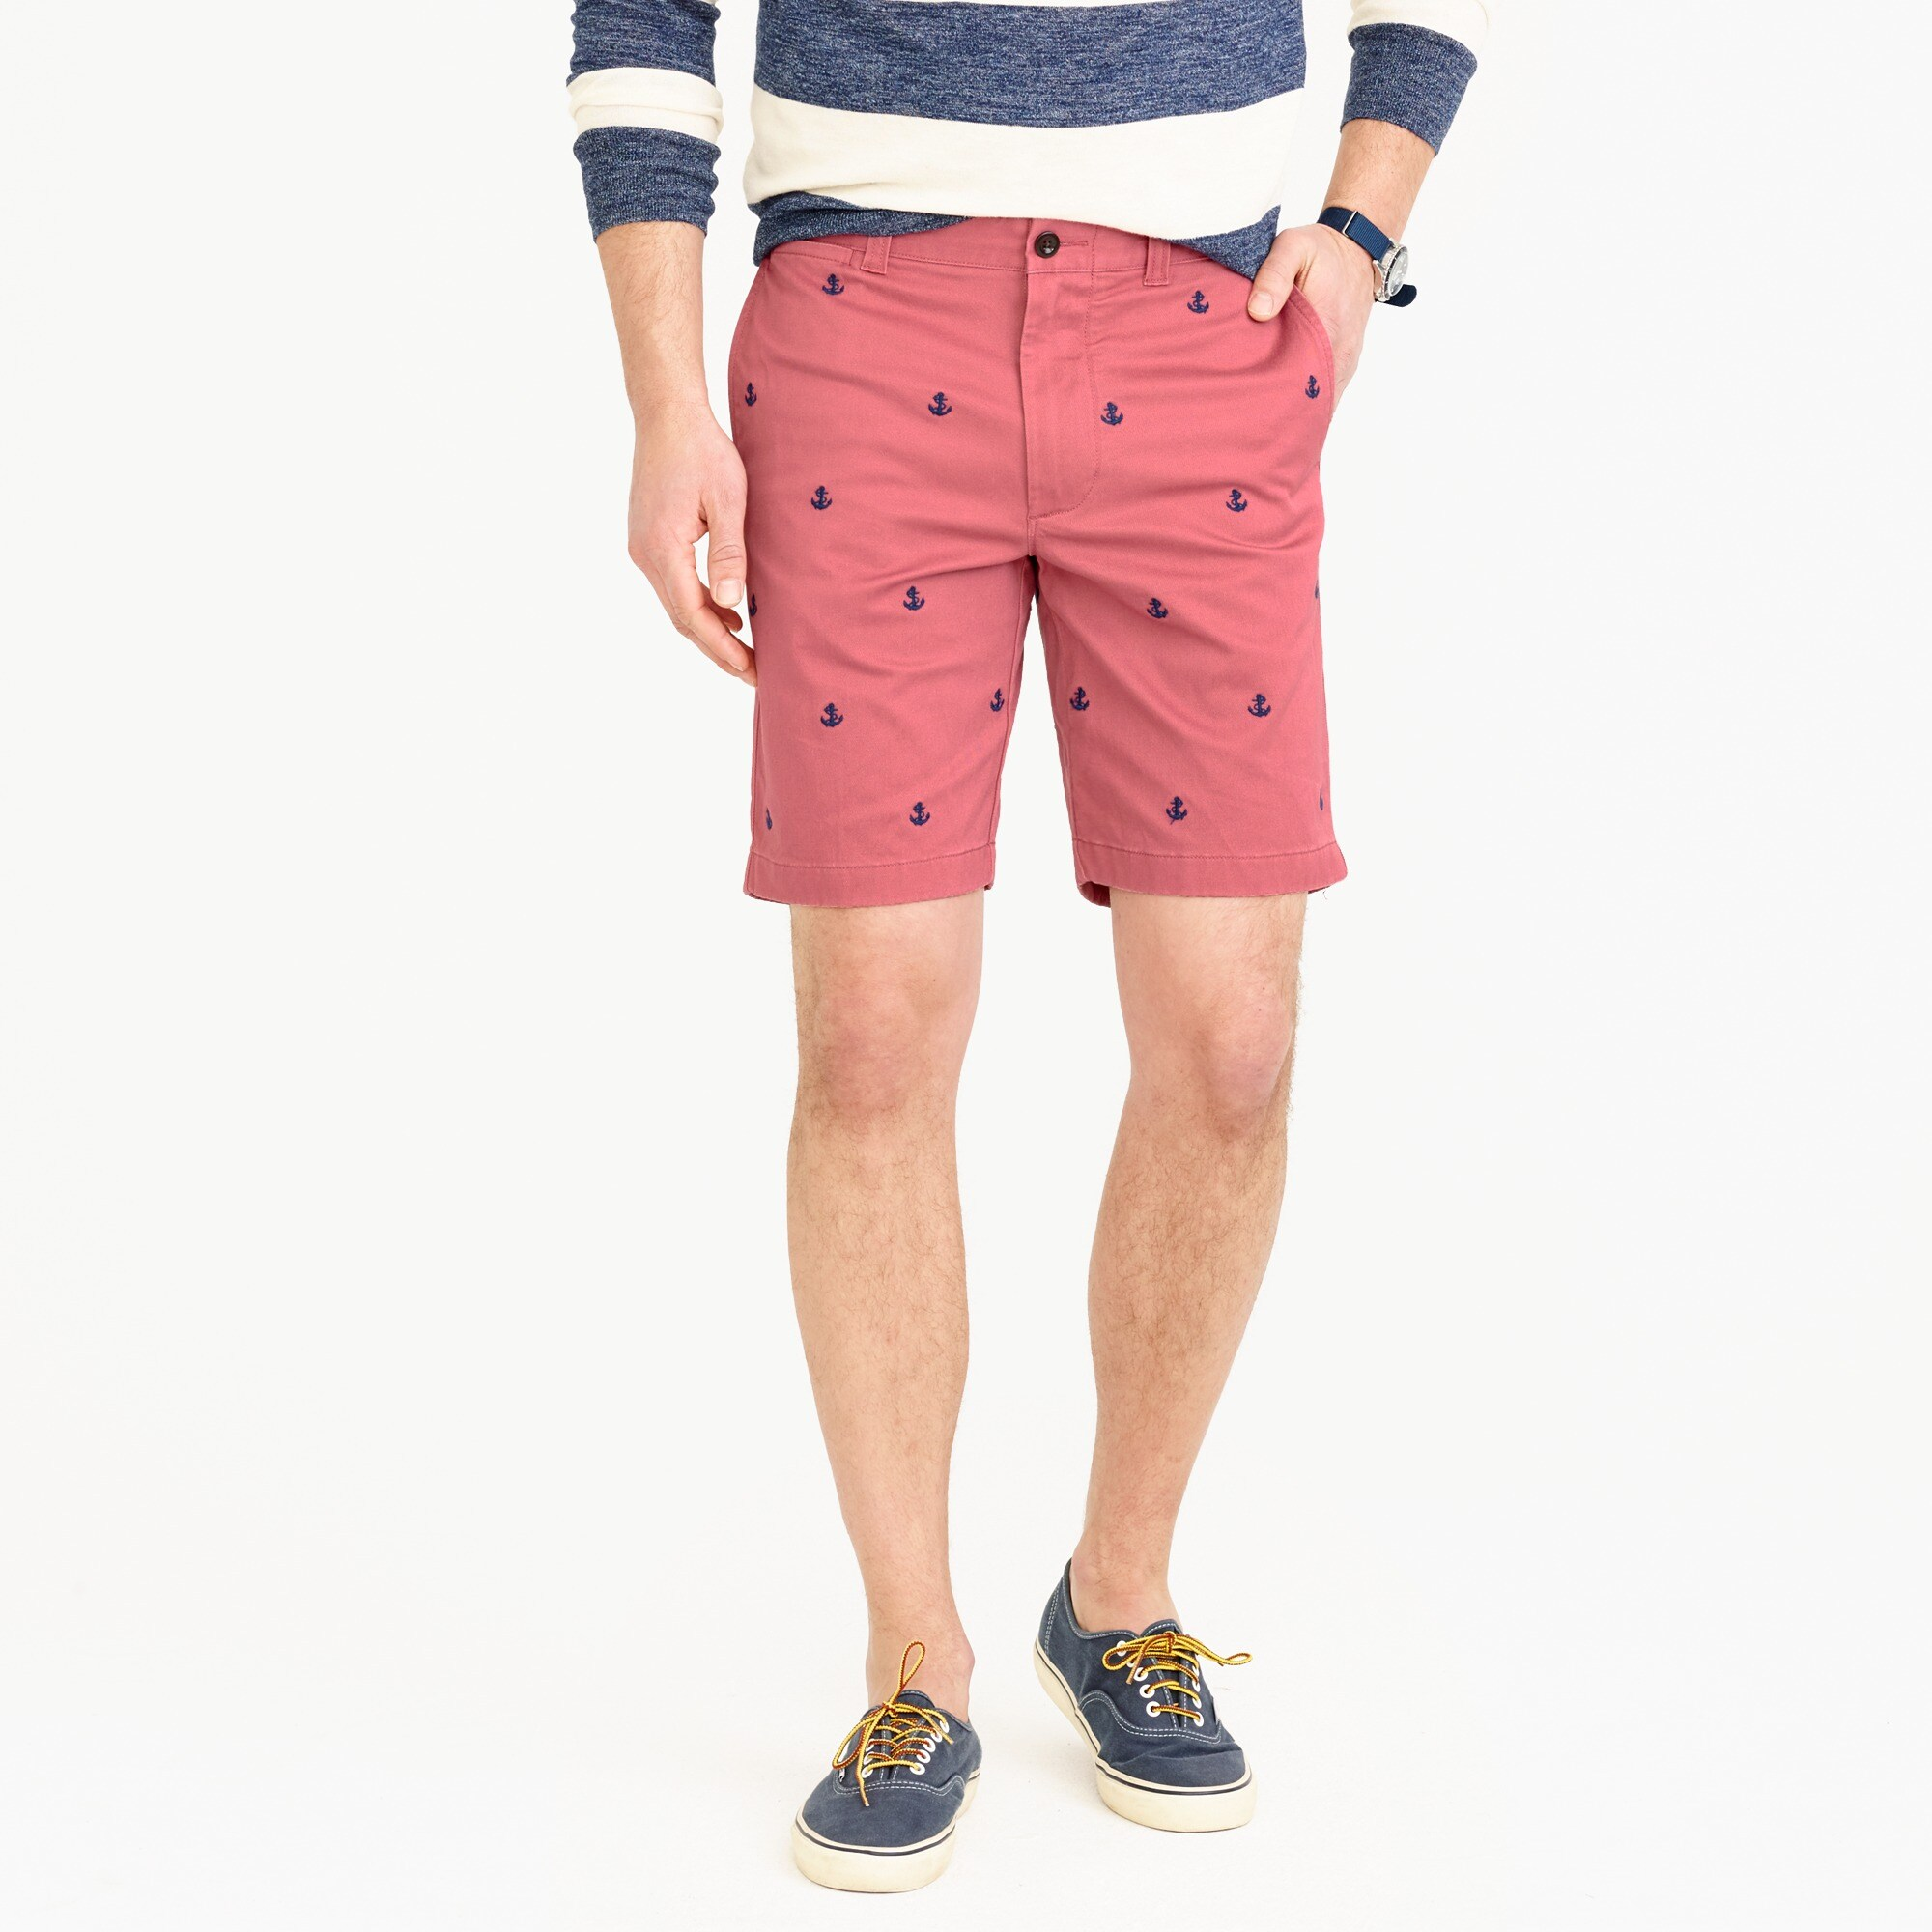 "9"" stretch short with embroidered anchors"